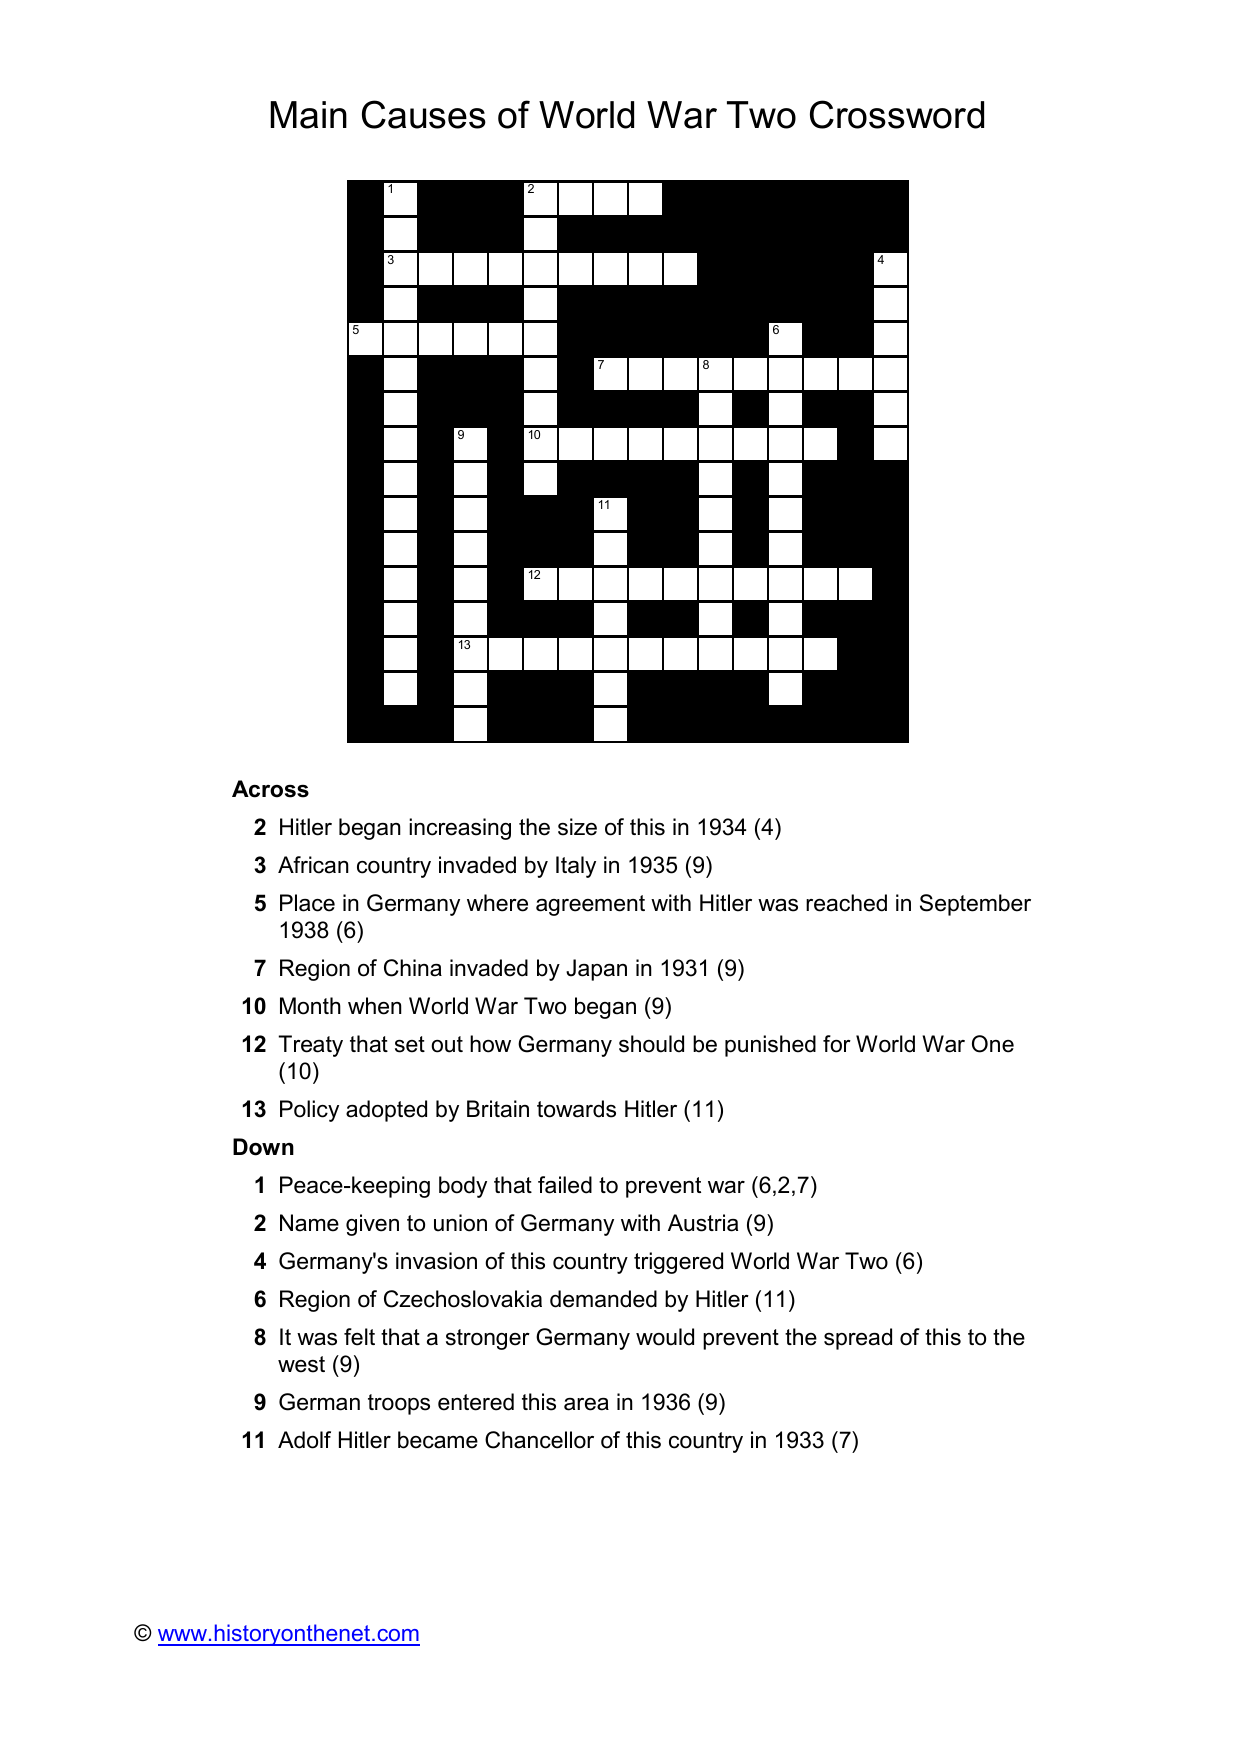 Main Causes of World War Two Crossword